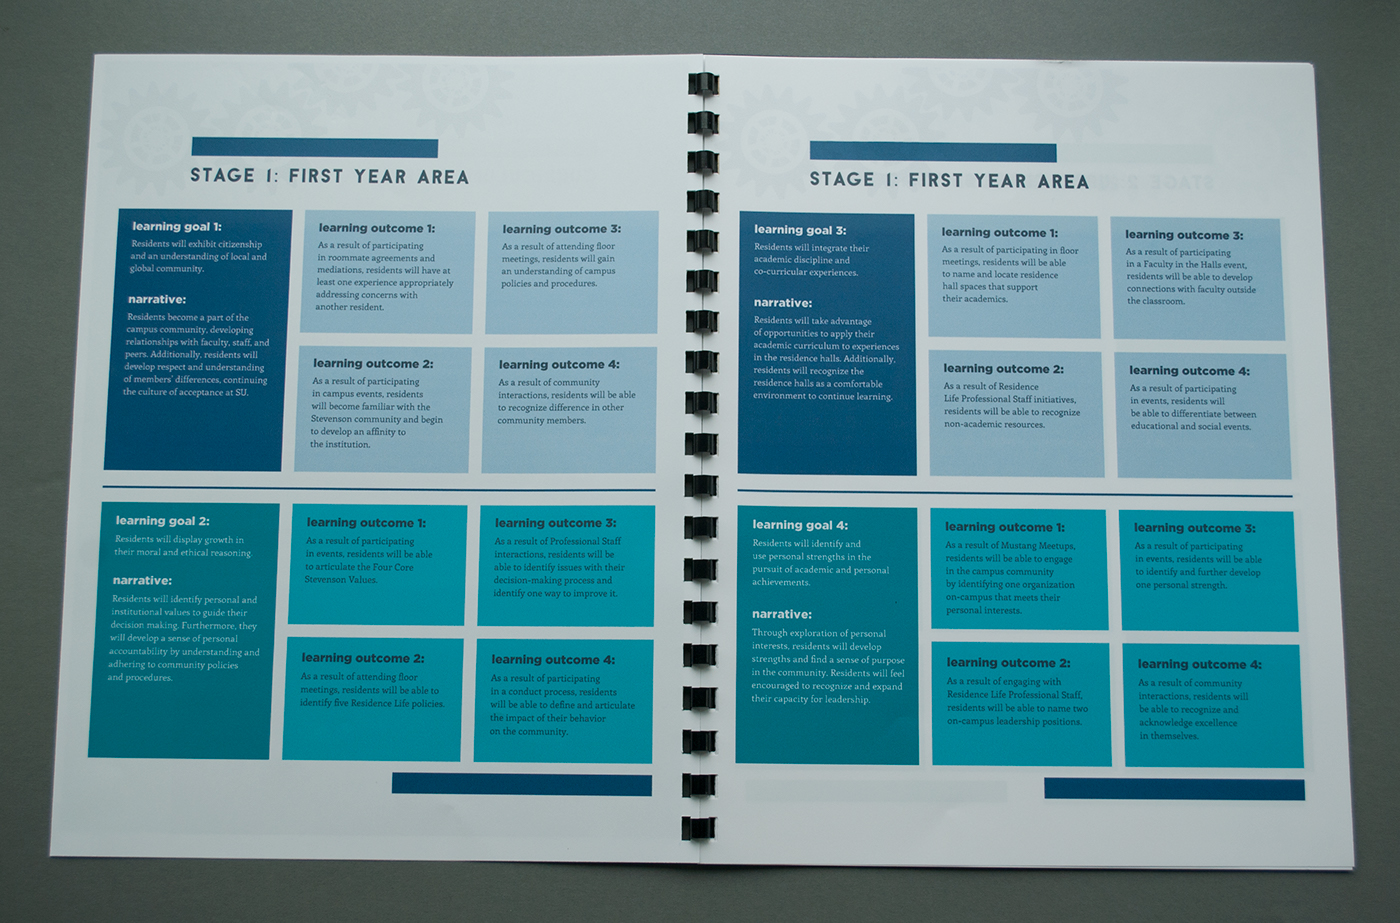 Guide curriculum manual Layout Design residence life Layout Stevenson University hierarchy Residence Life Guide gears